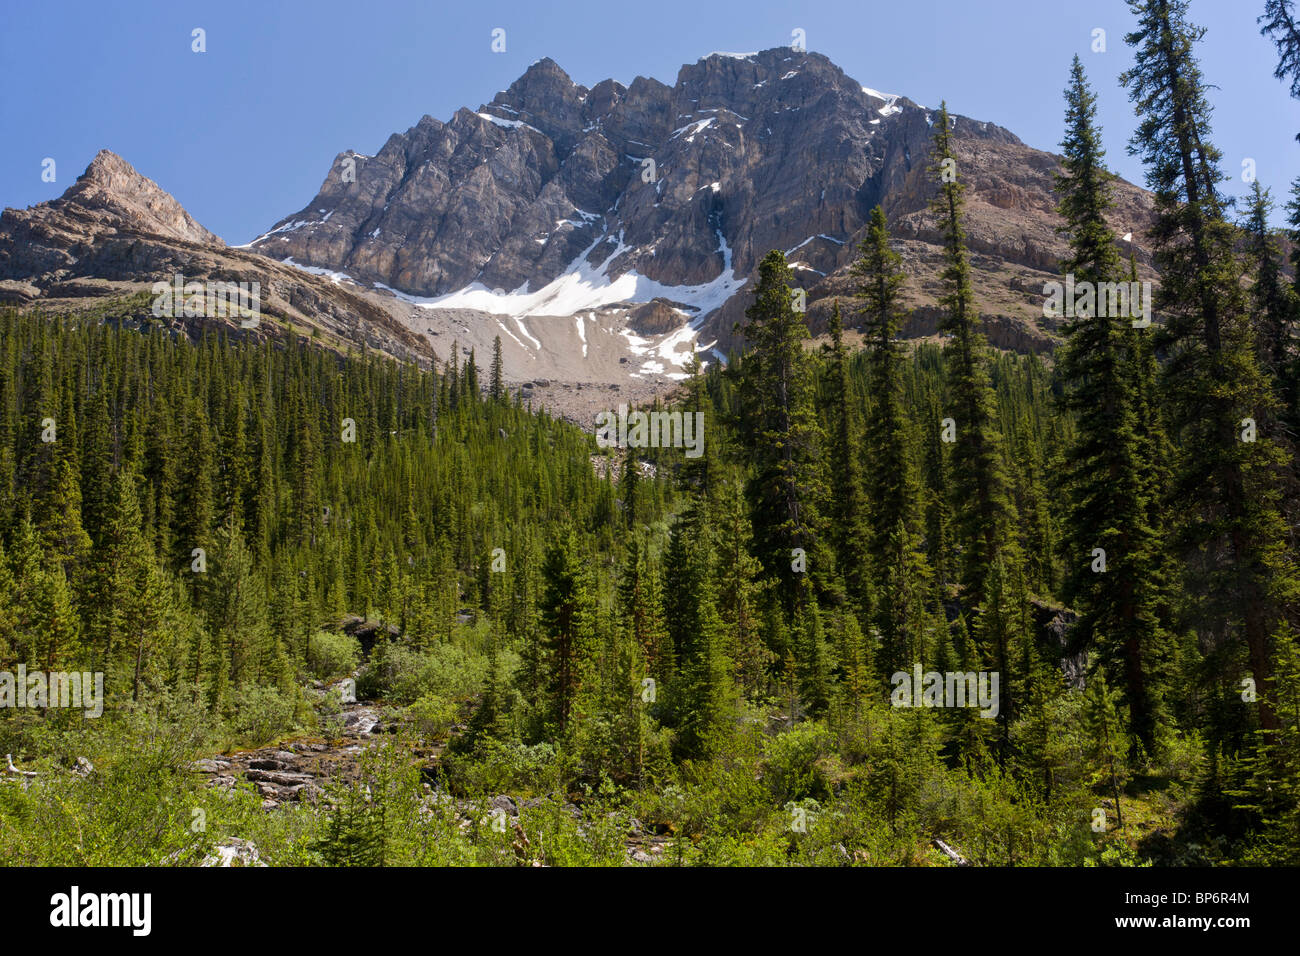 Mixed coniferous forest in Mosquito Creek, below Molar Pass, Banff National Park, the Rockies, Canada - Stock Image